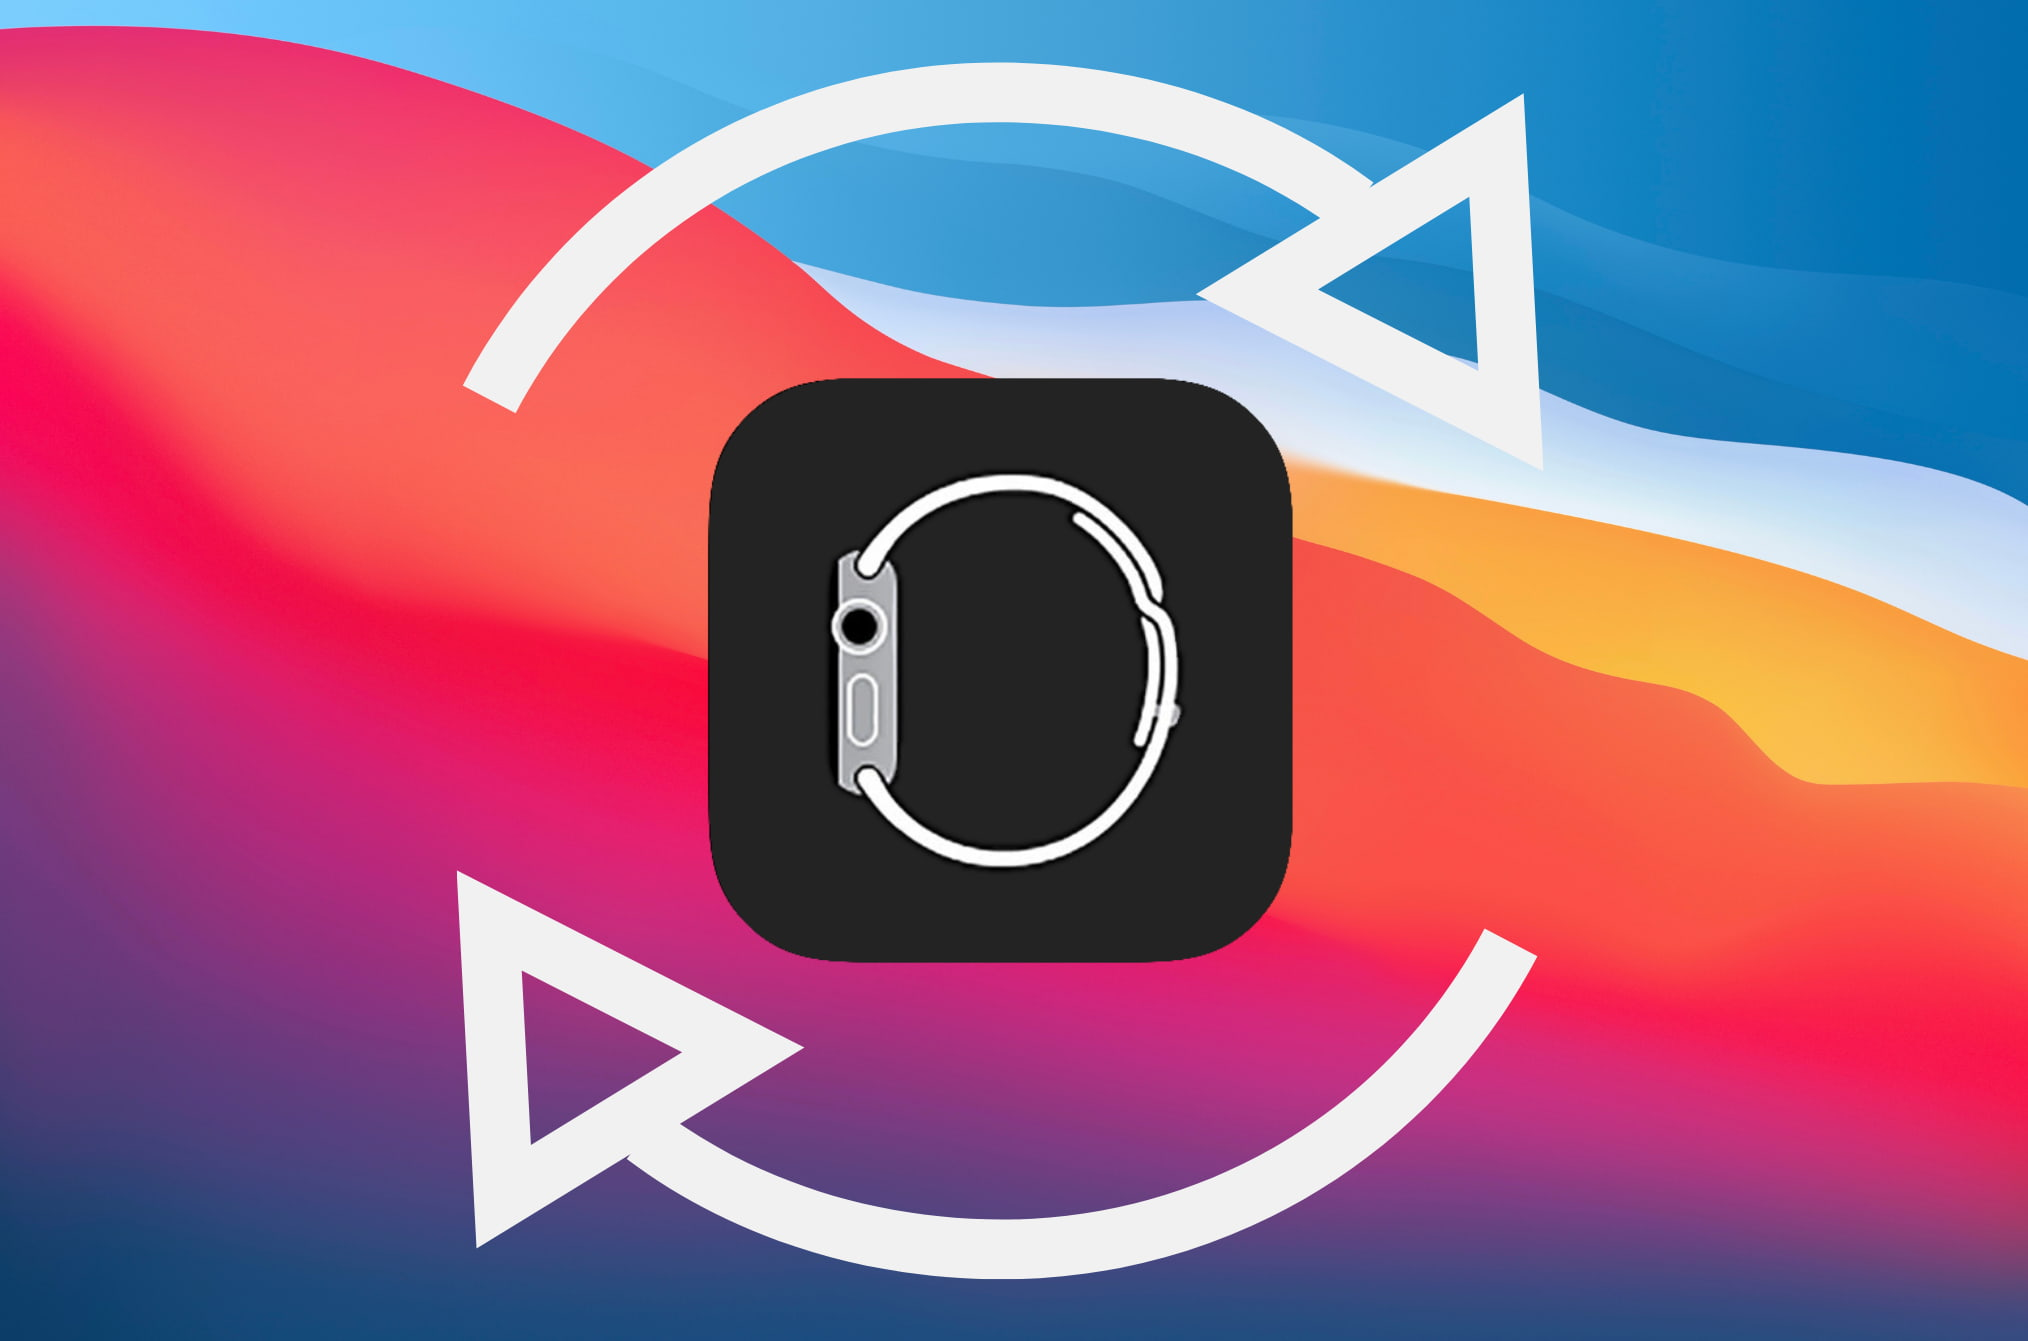 Leave the watchOS beta